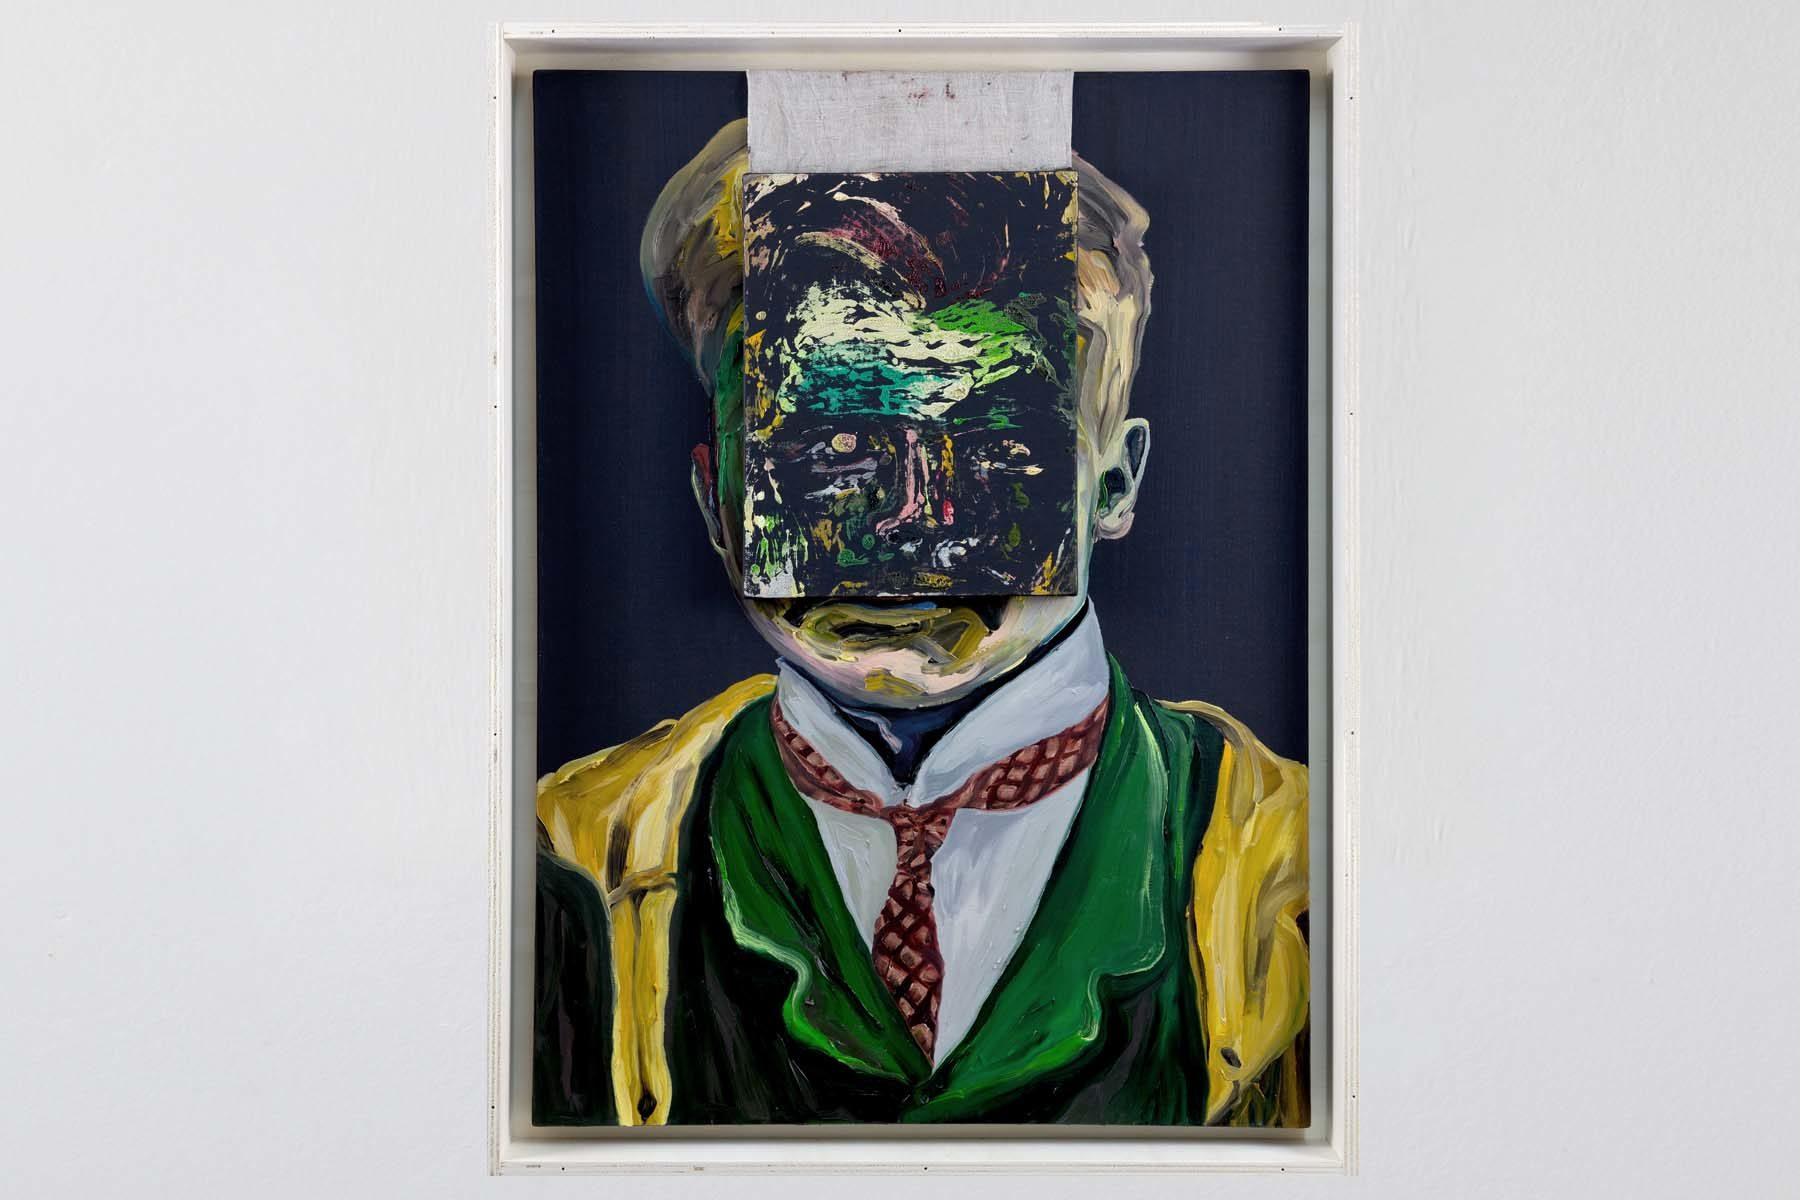 Matteo Fato, Untitled (portrait of Hermann Rorschach 1884-1922), 2013, oil on linen, case for transport in plywood, 100 x 70 cm